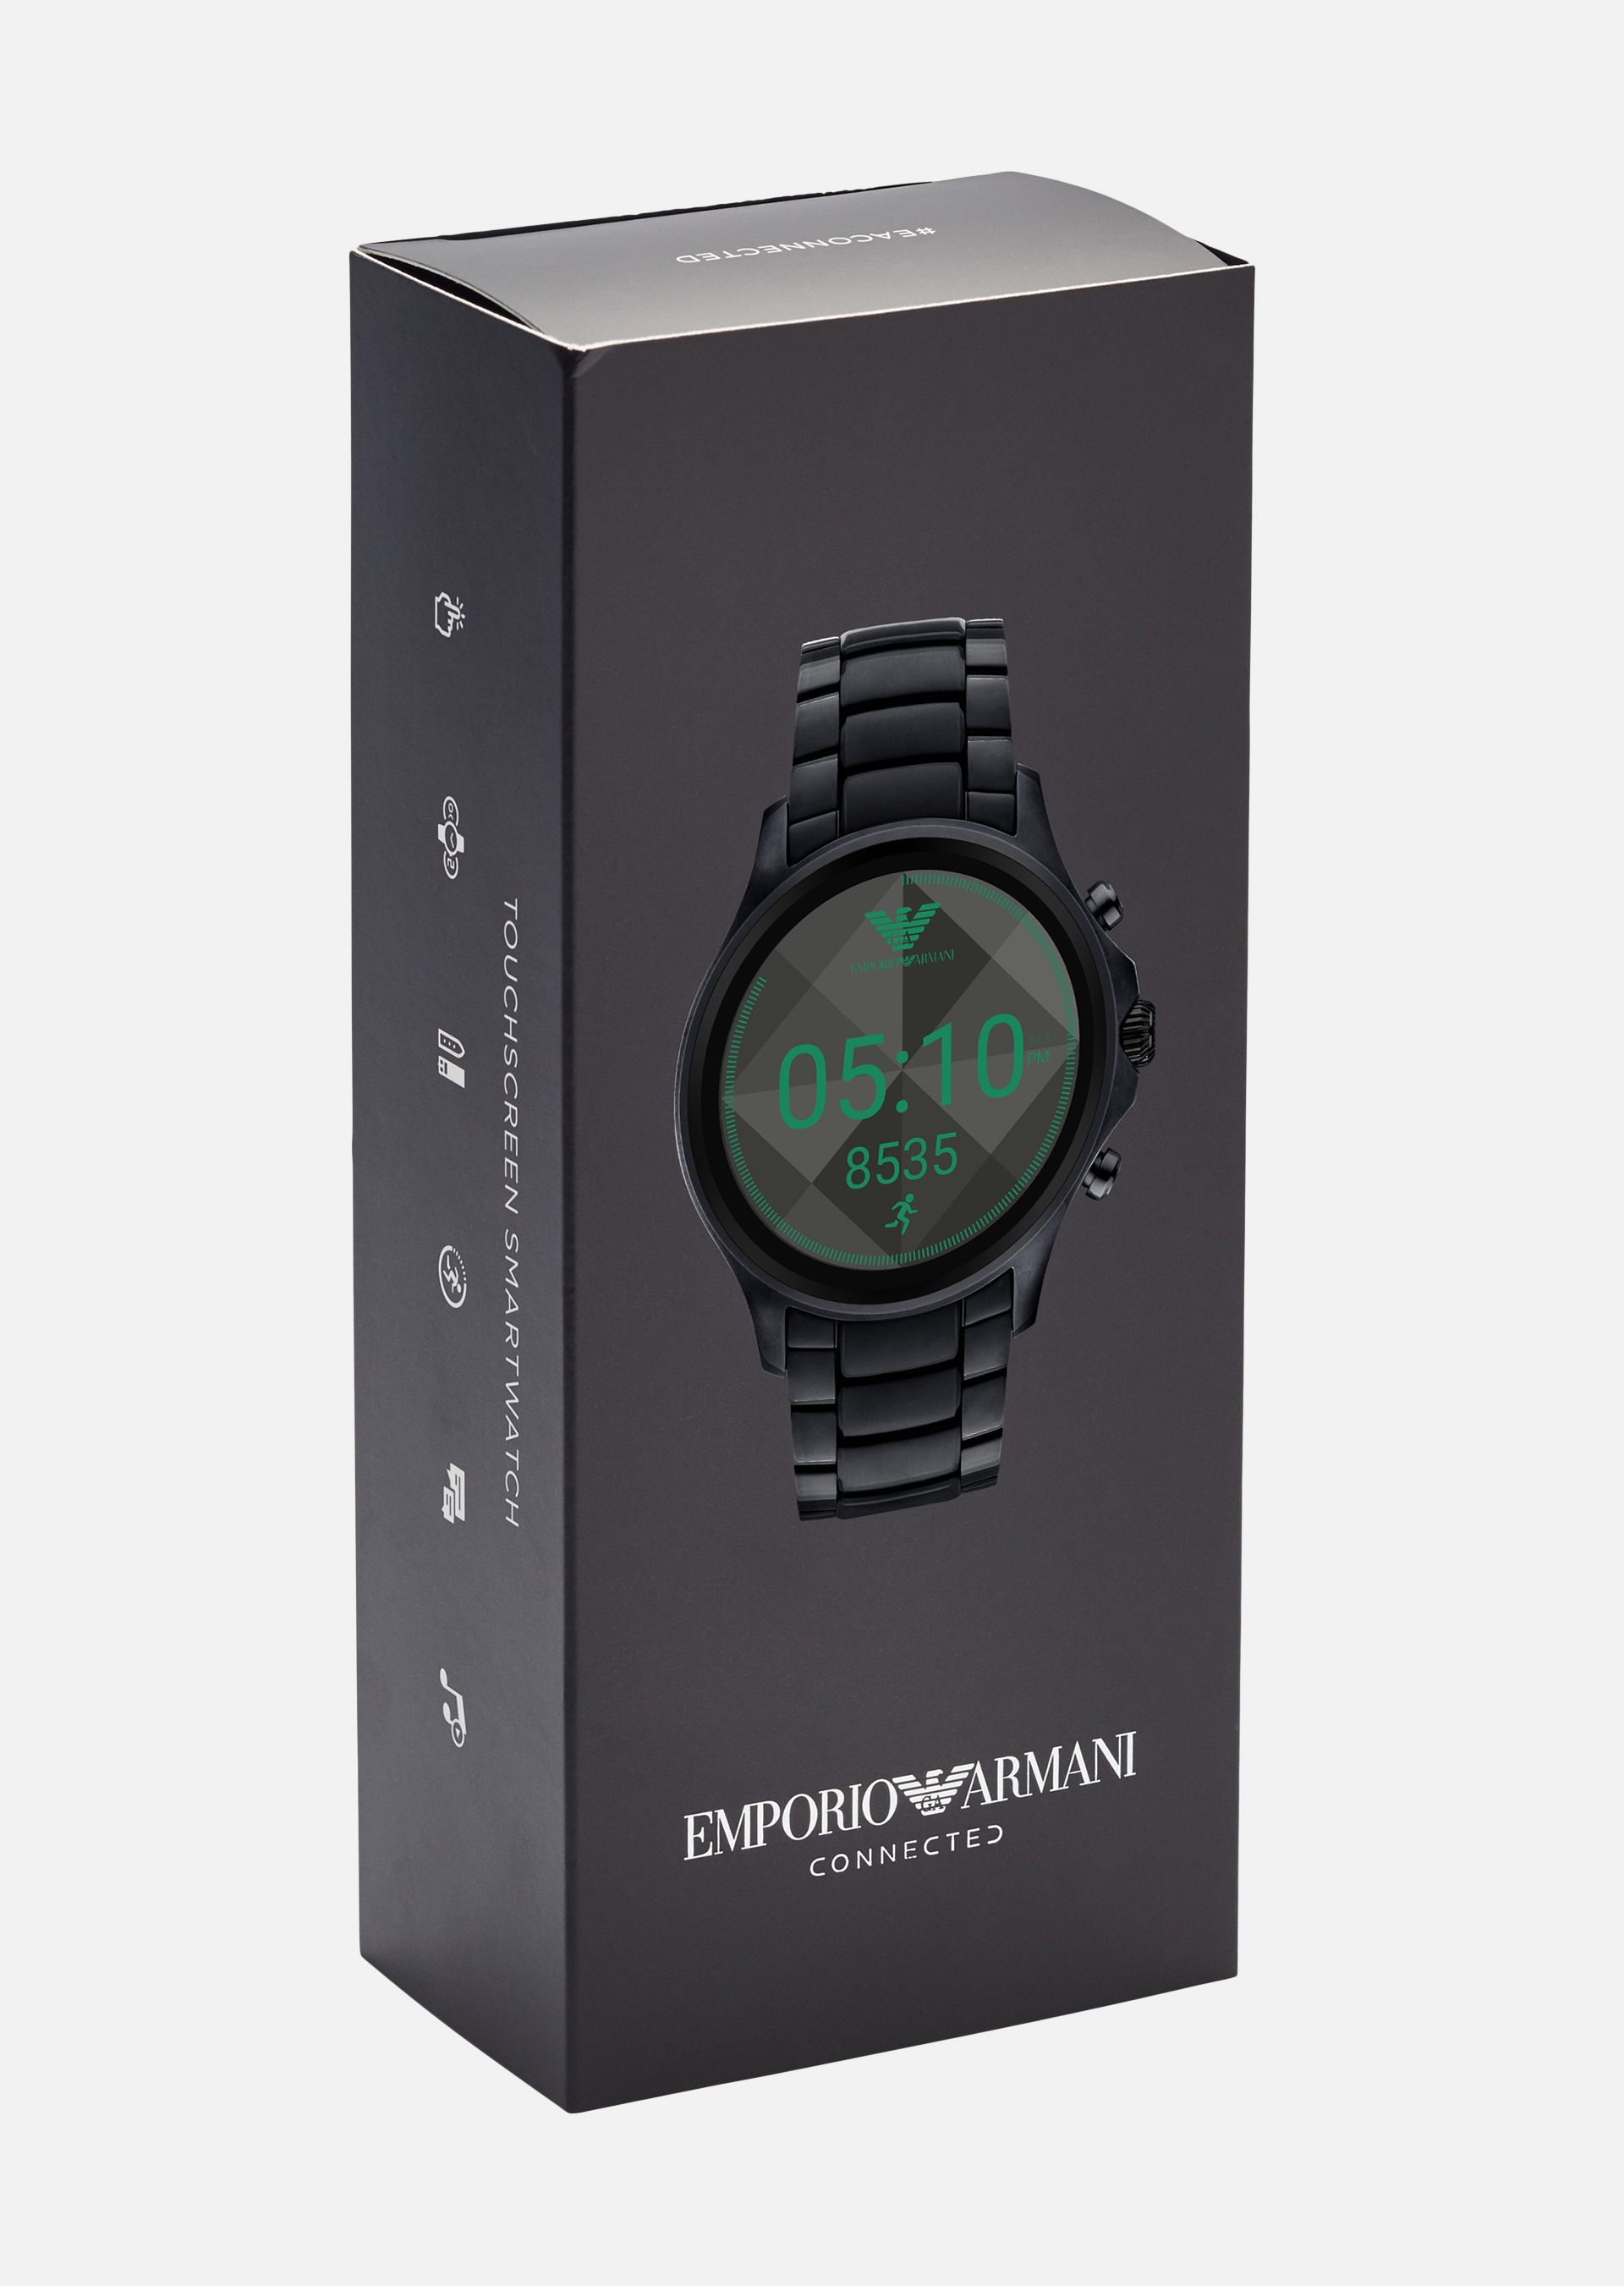 EMPORIO ARMANI SMARTWATCH TOUCHSCREEN 5002 Connected U a